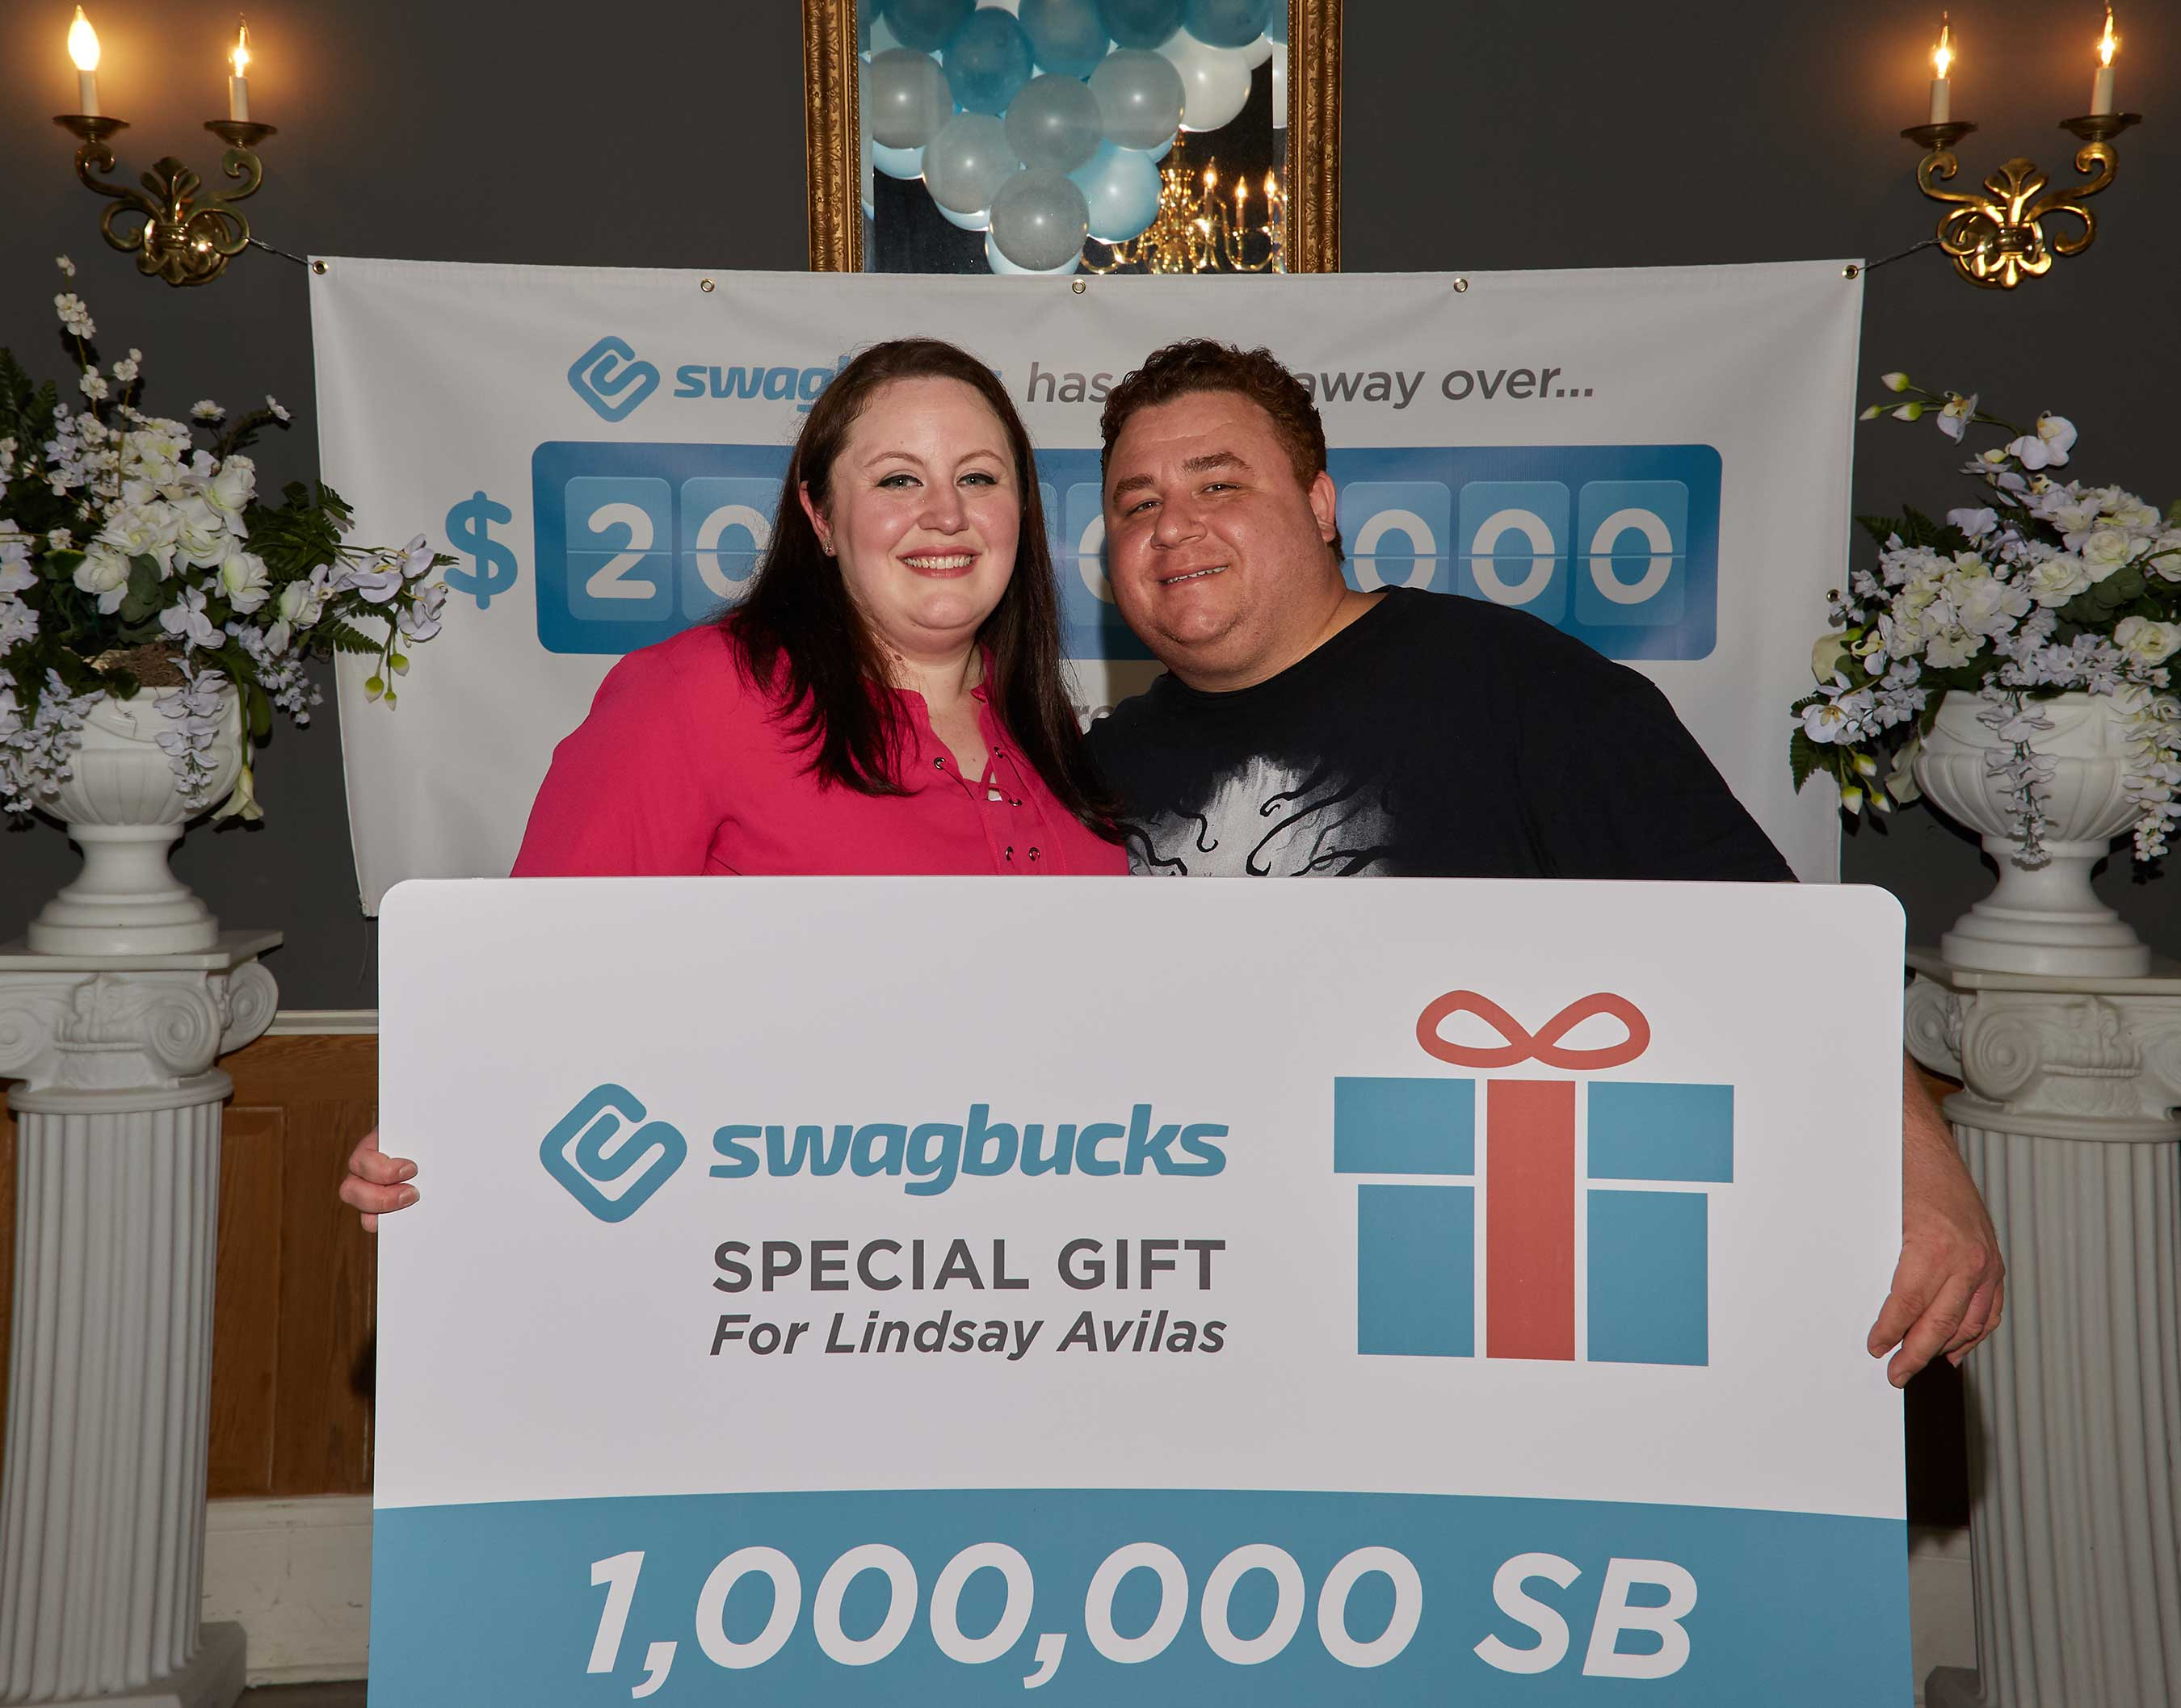 Local Metairie, Louisiana residents Lindsay Avilas and John Jackson receive a gift card for 1 million SB points equaling $10,000 to recognize that the digital rewards program, Swagbucks, has given back over $200 million to its members. Avilas and Jackson have earned enough Swagbucks points to pay for their upcoming wedding.